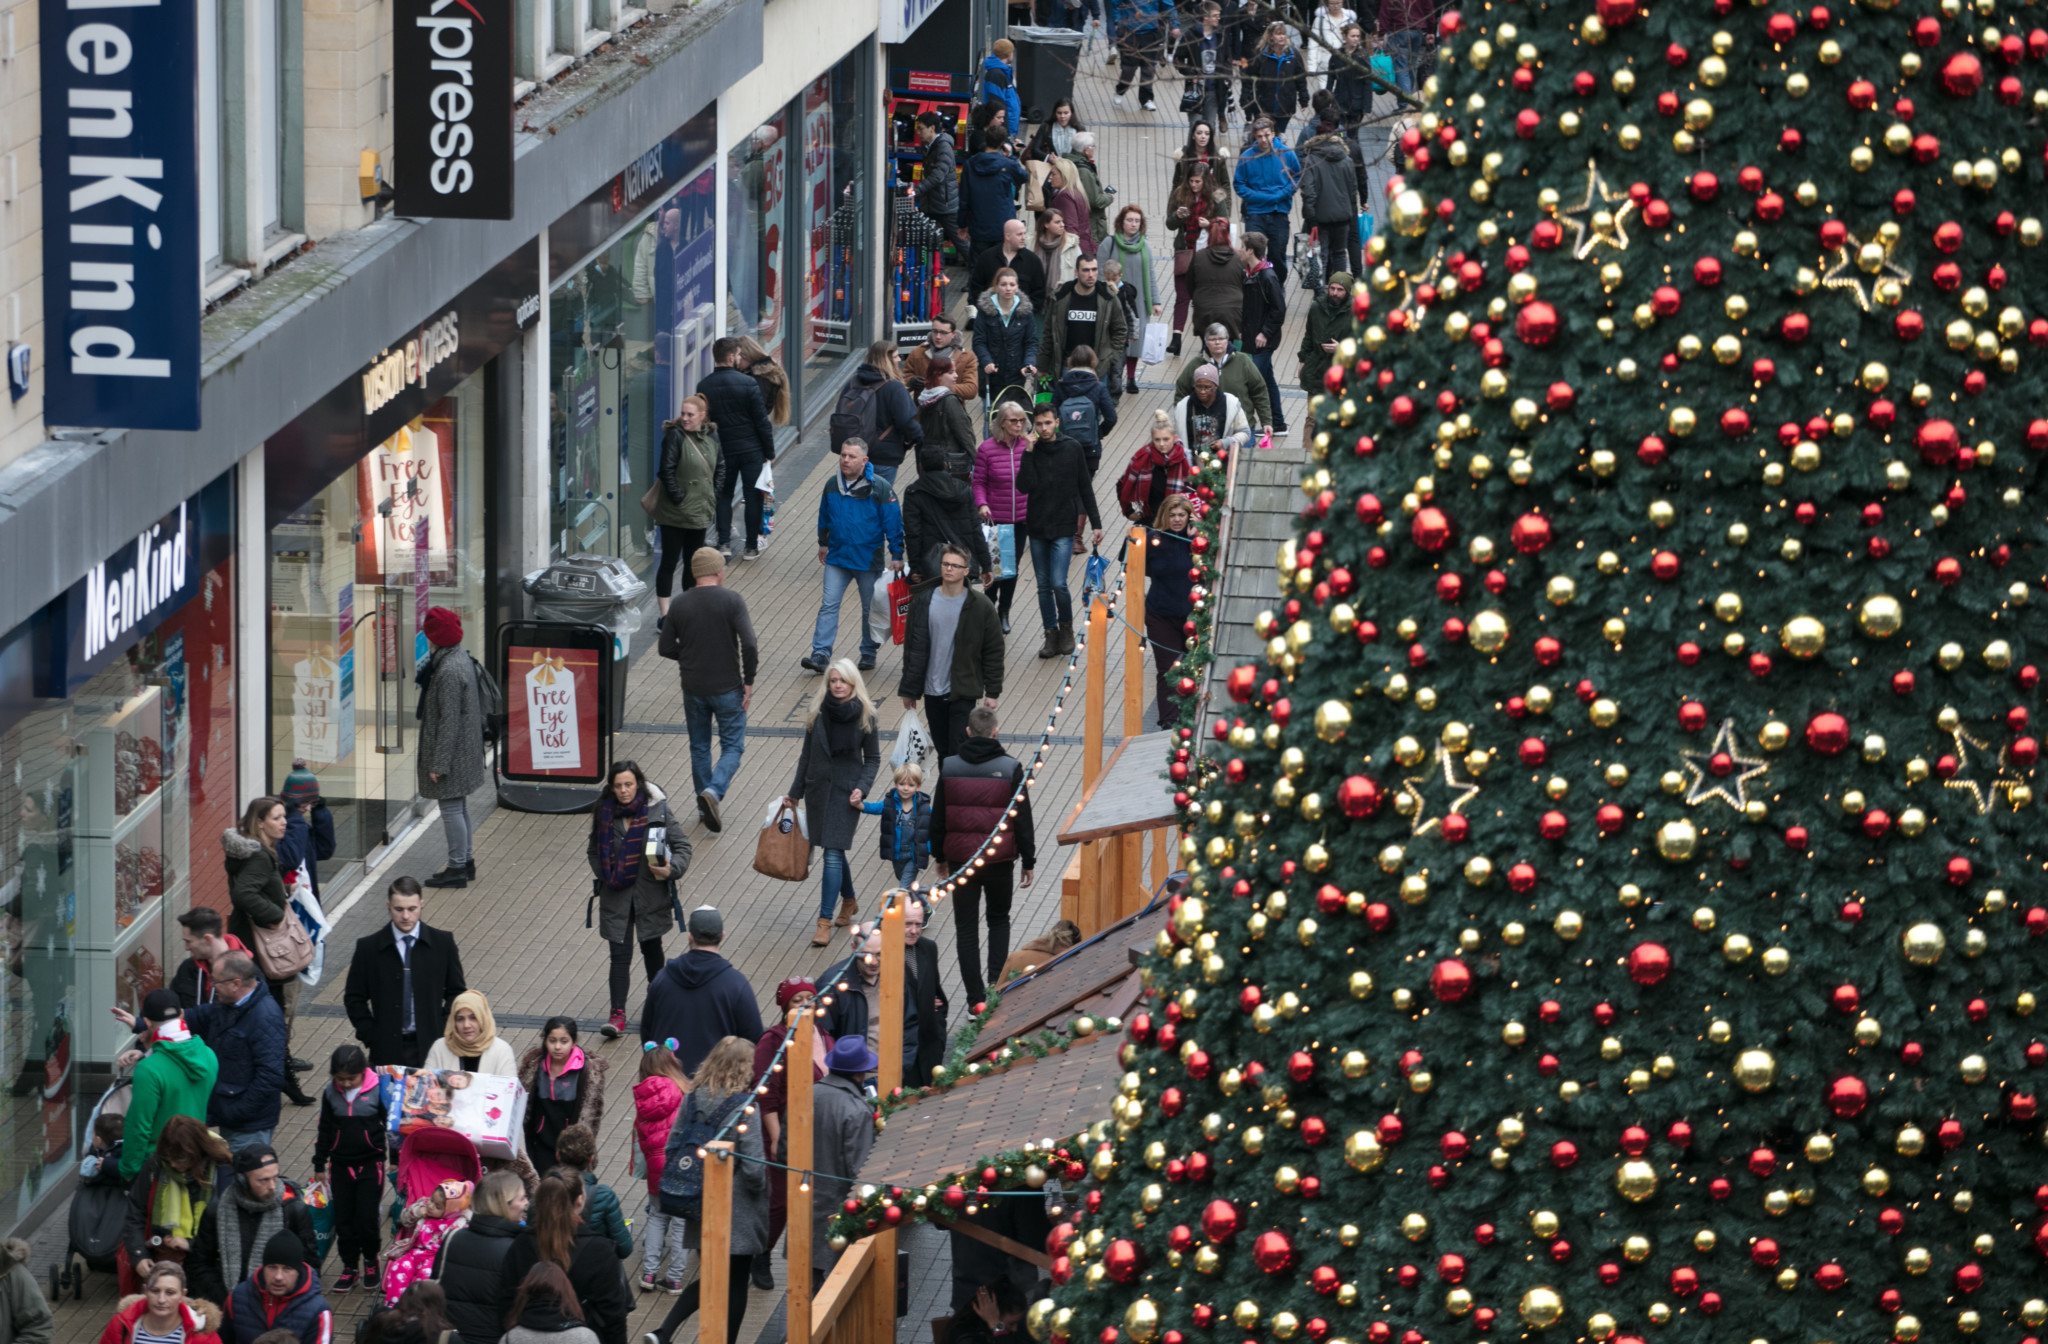 High Street Retailers Battle For Share Of Xmas Spend